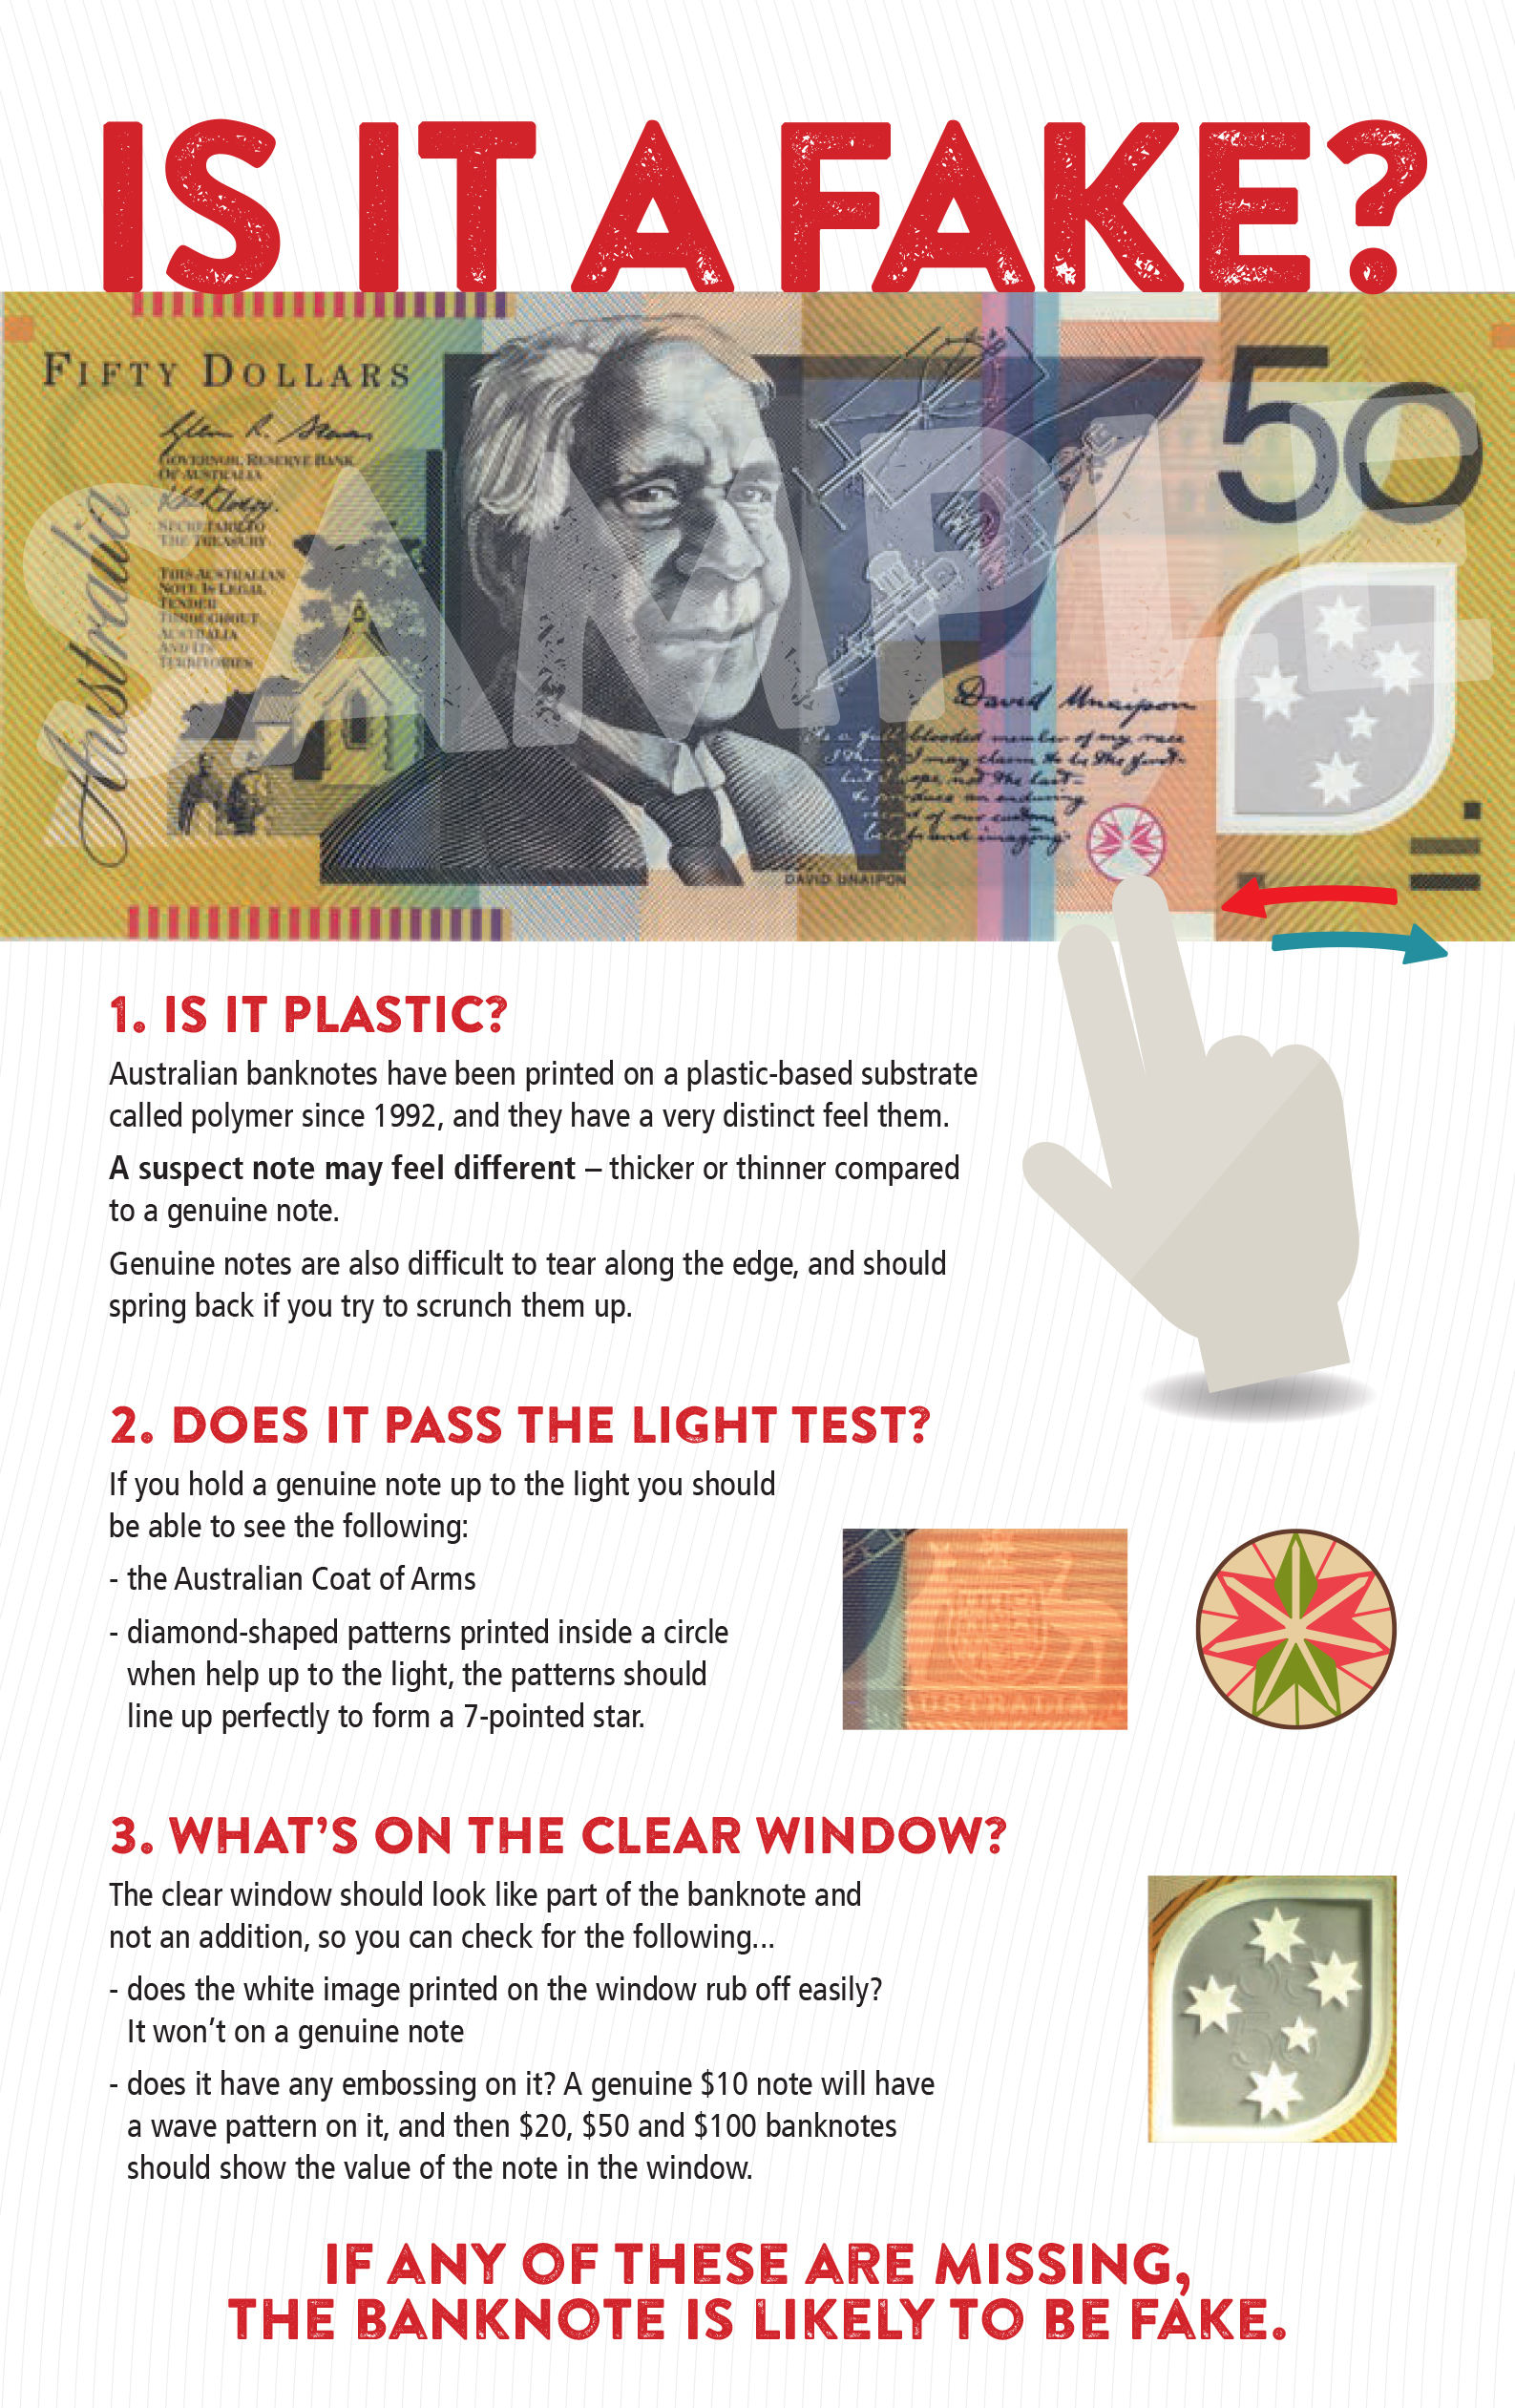 How to Spot a Fake Aussie Banknote | Travel Money Oz